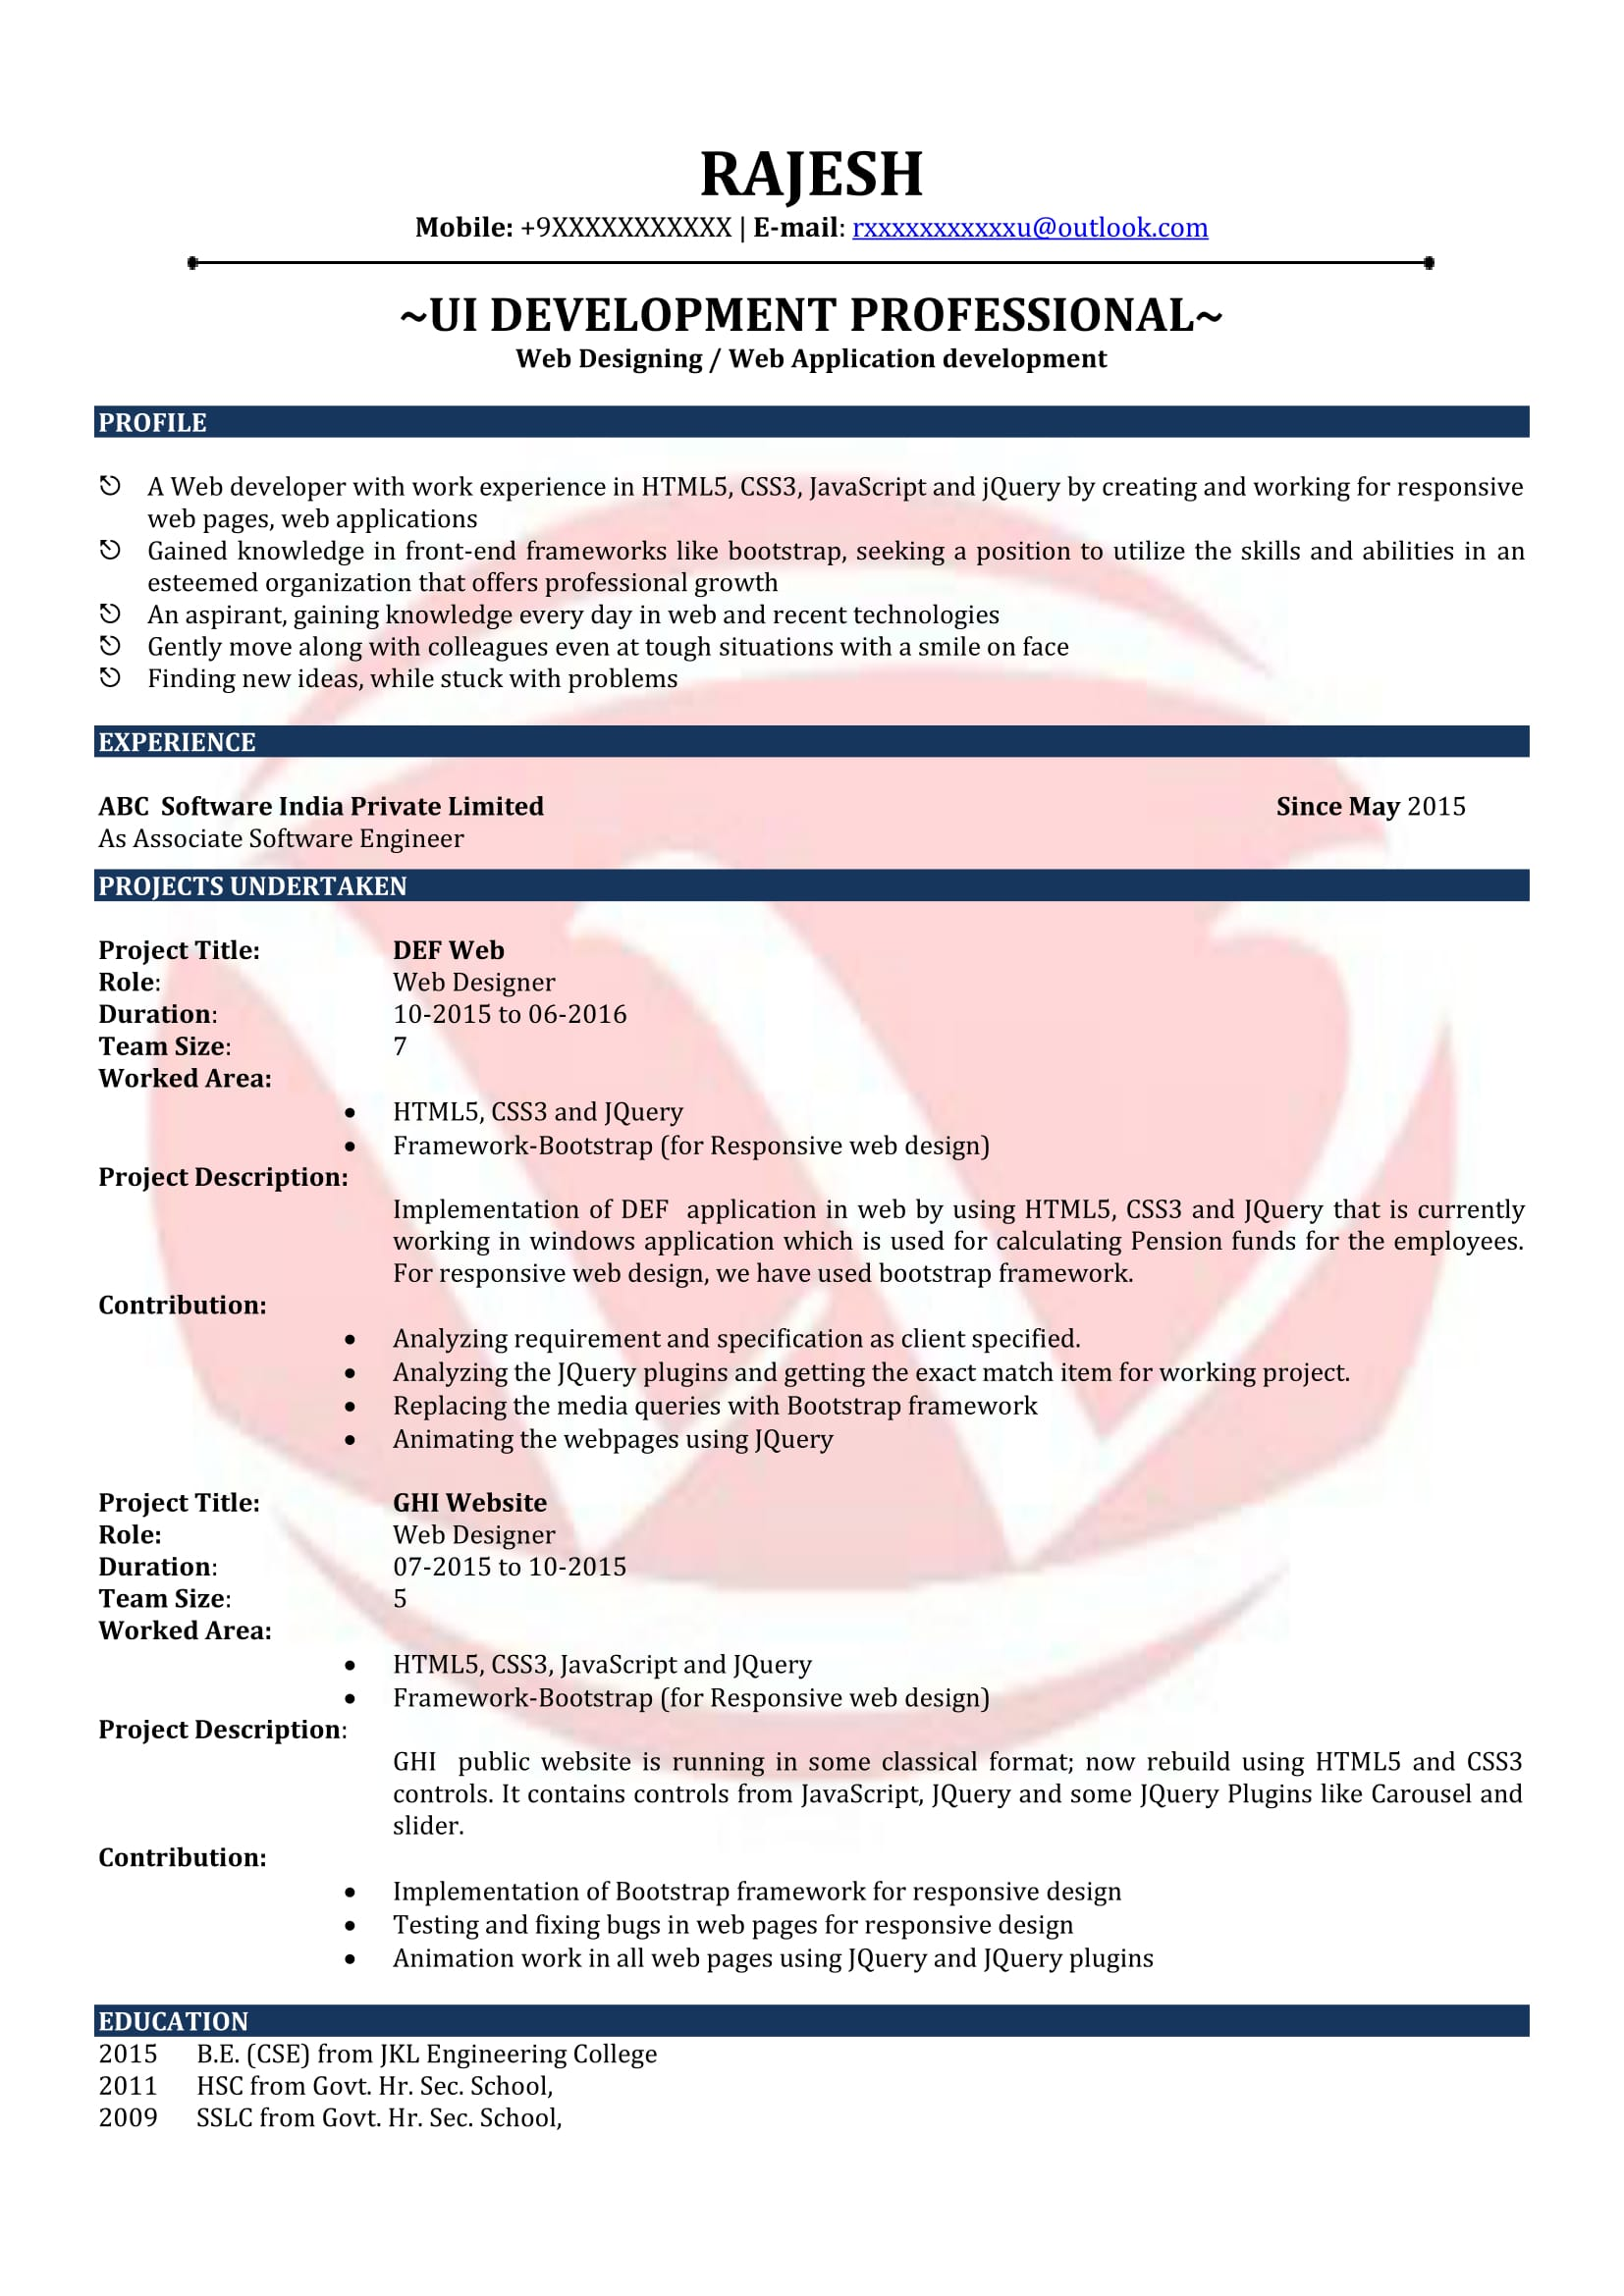 web designer sample resumes resume format templates for freshers executive assistant Resume Web Designer Resume Sample For Freshers